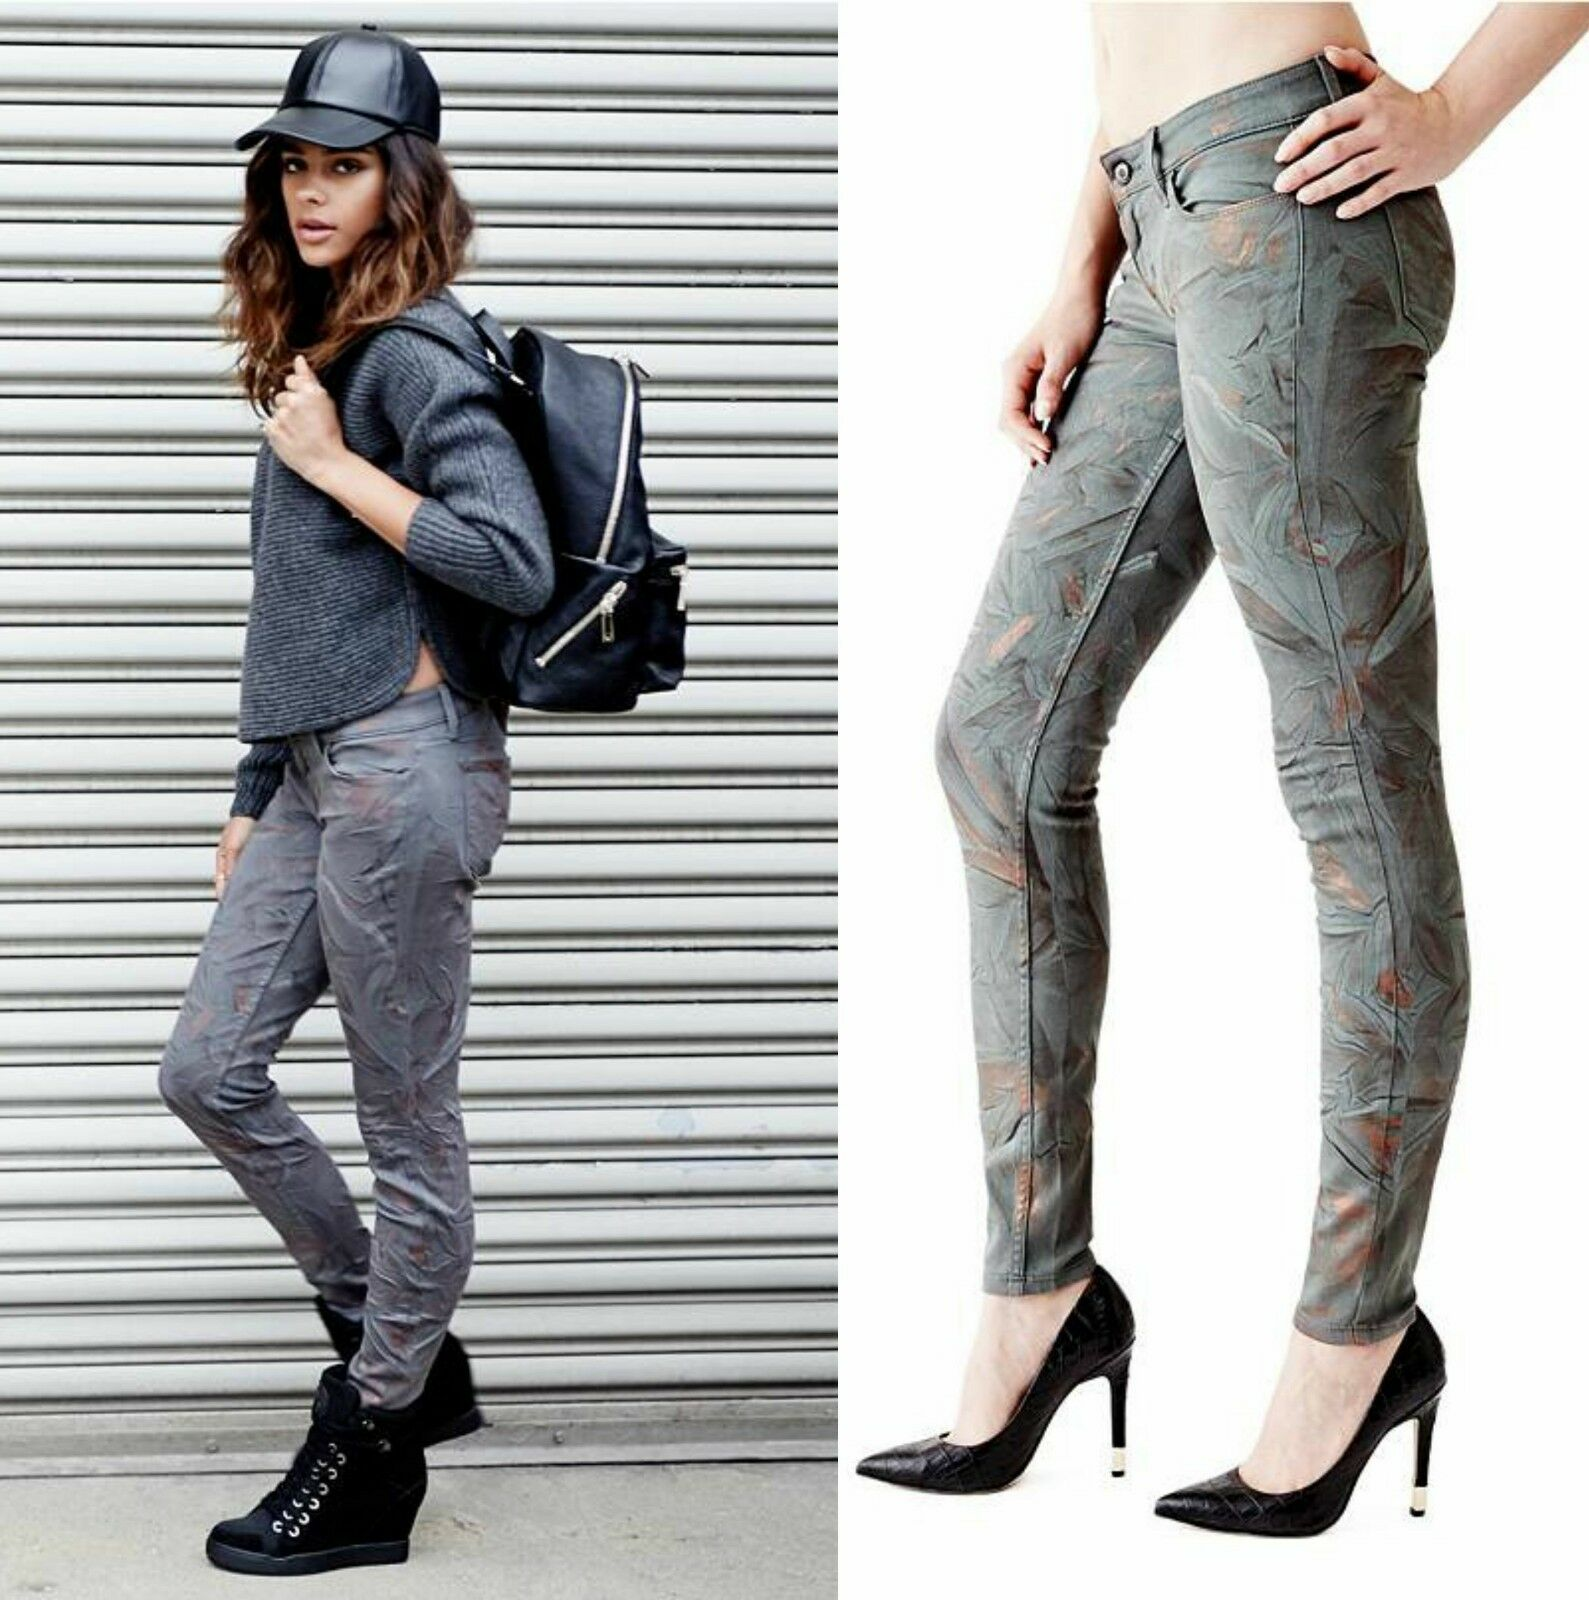 GUESS LOW-RISE POWER SKINNY JEANS IN COSMO BLOOM WASH